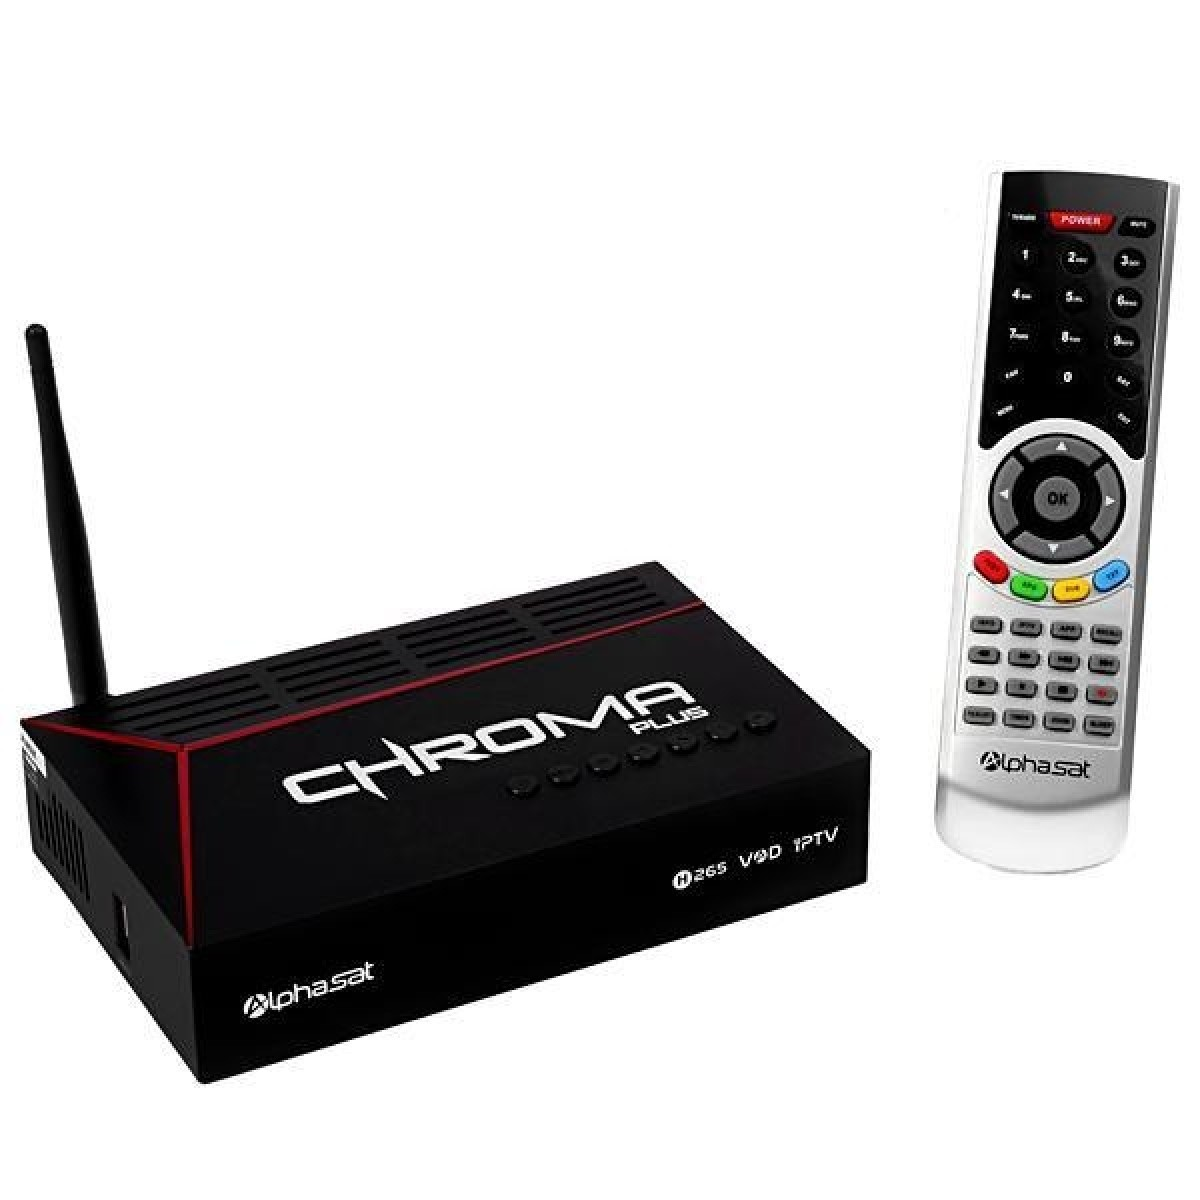 Receptor Alphasat Chroma Plus Full HD com Wi-Fi/USB/HDMI/Iptv Bivolt